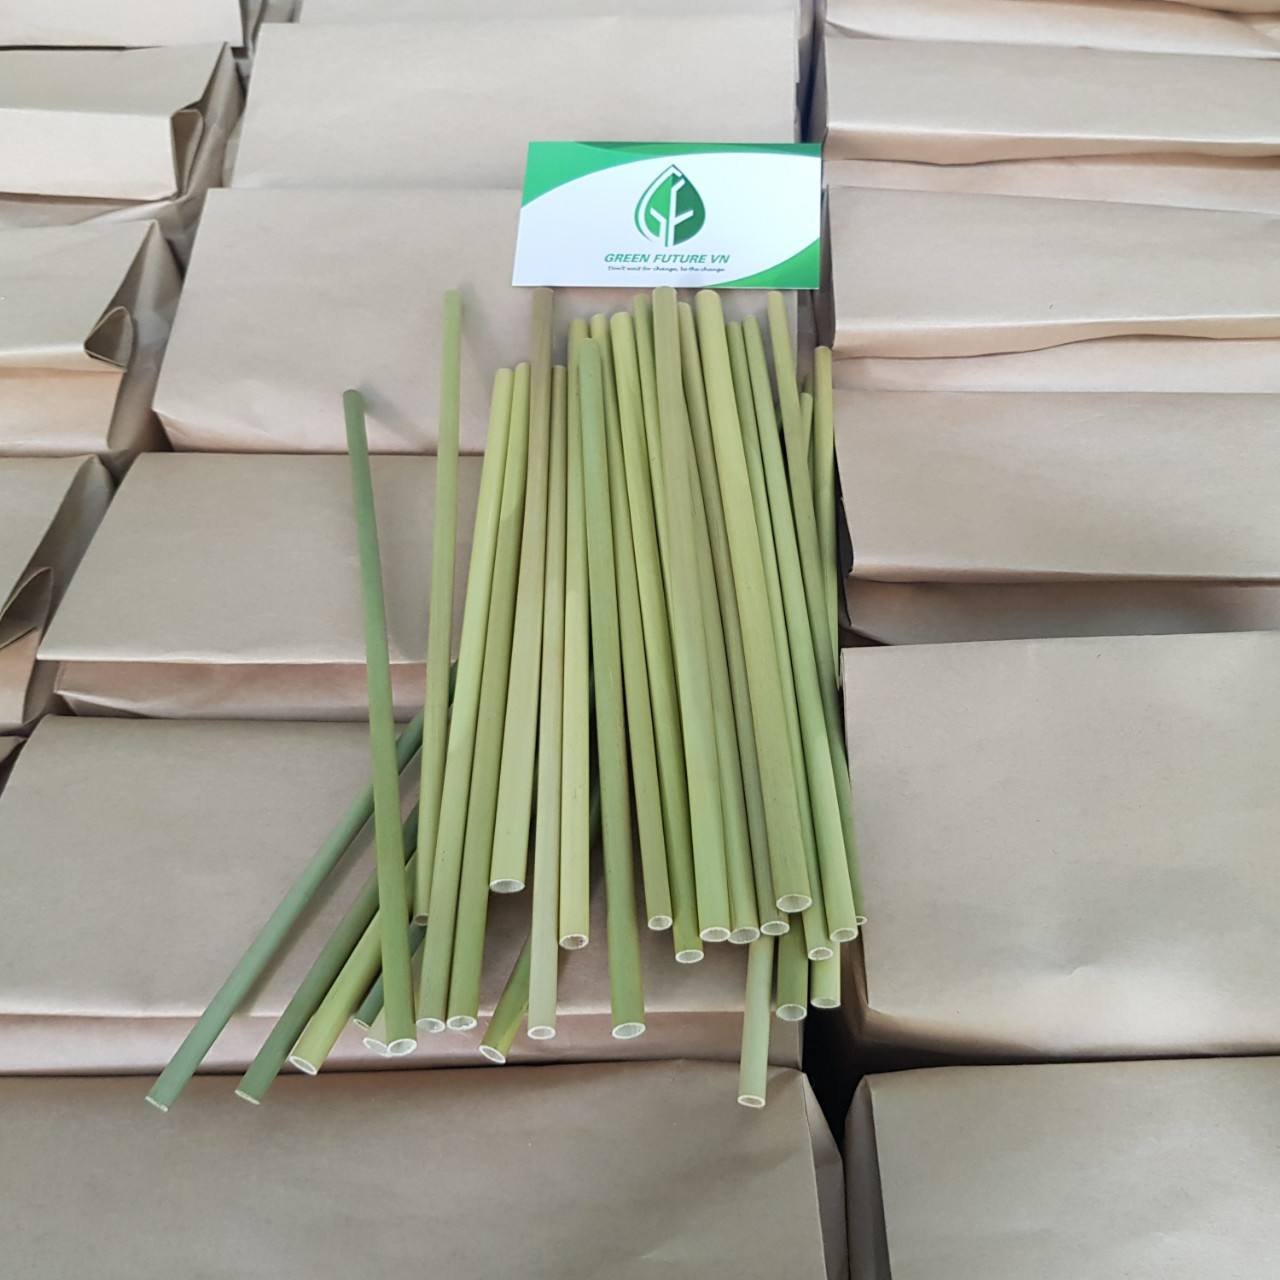 big Supply grass straws for Amazon seller from Viet Nam